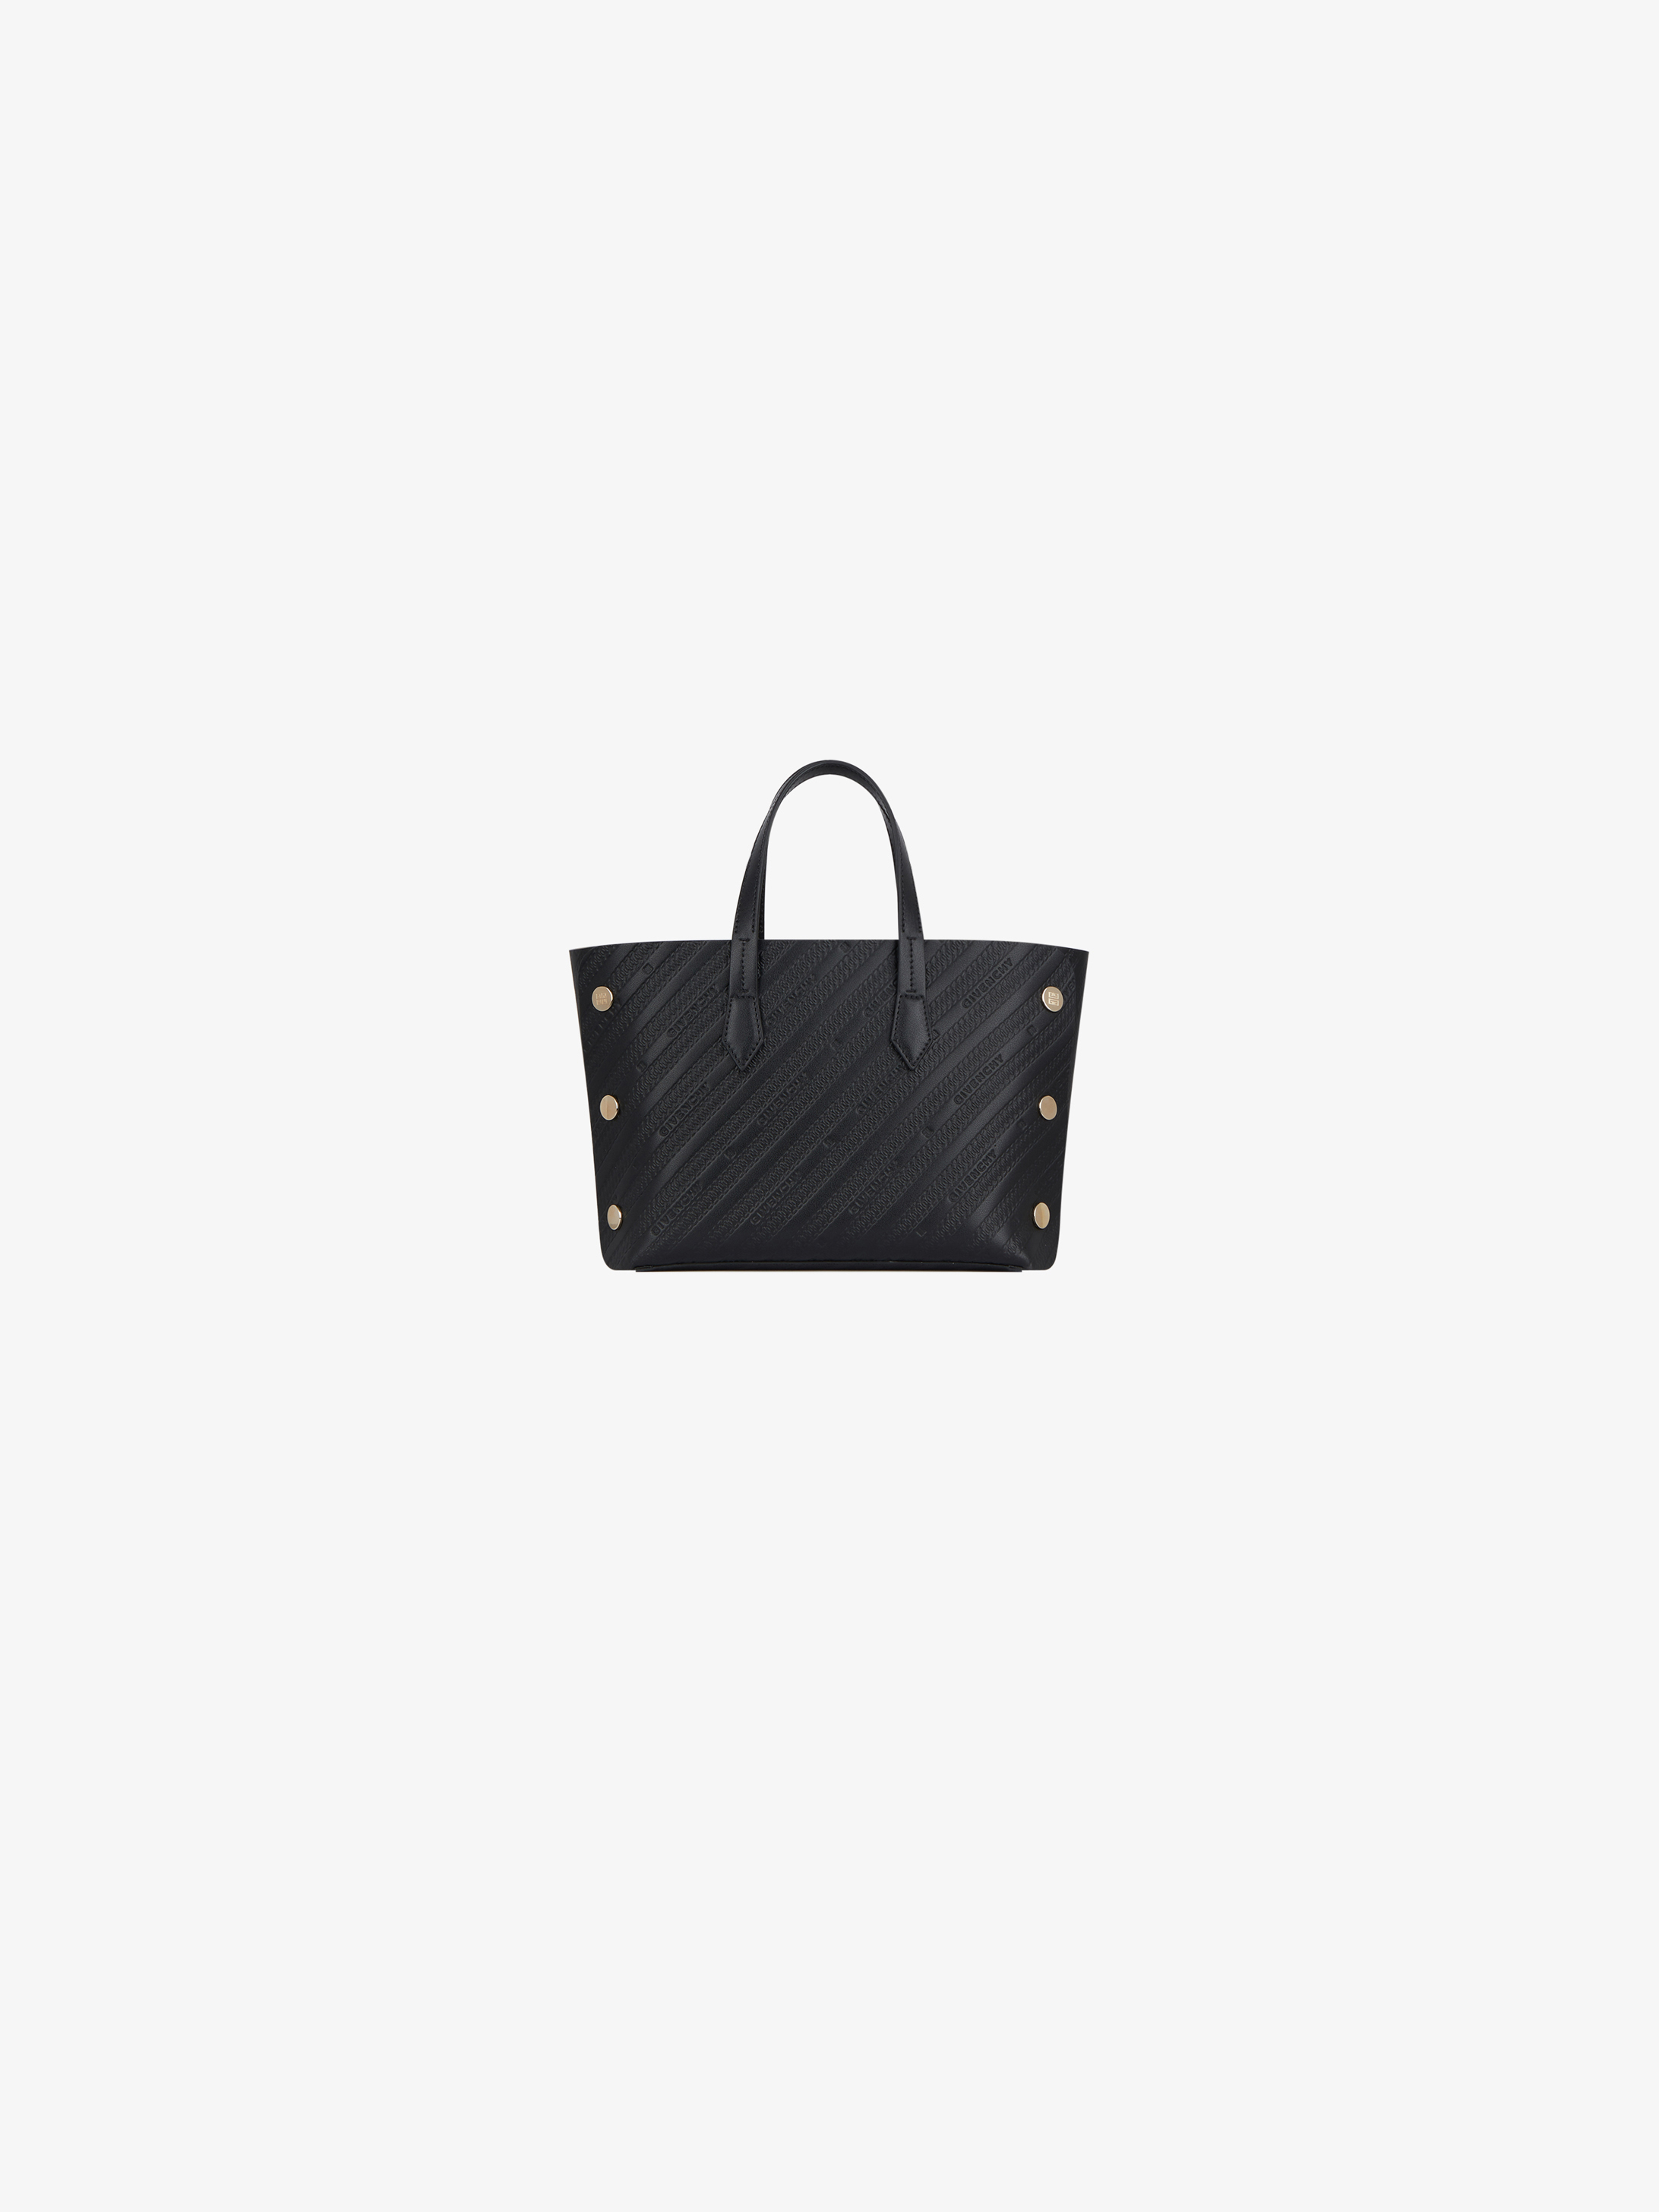 Mini BOND shopper in GIVENCHY chain embossed leather